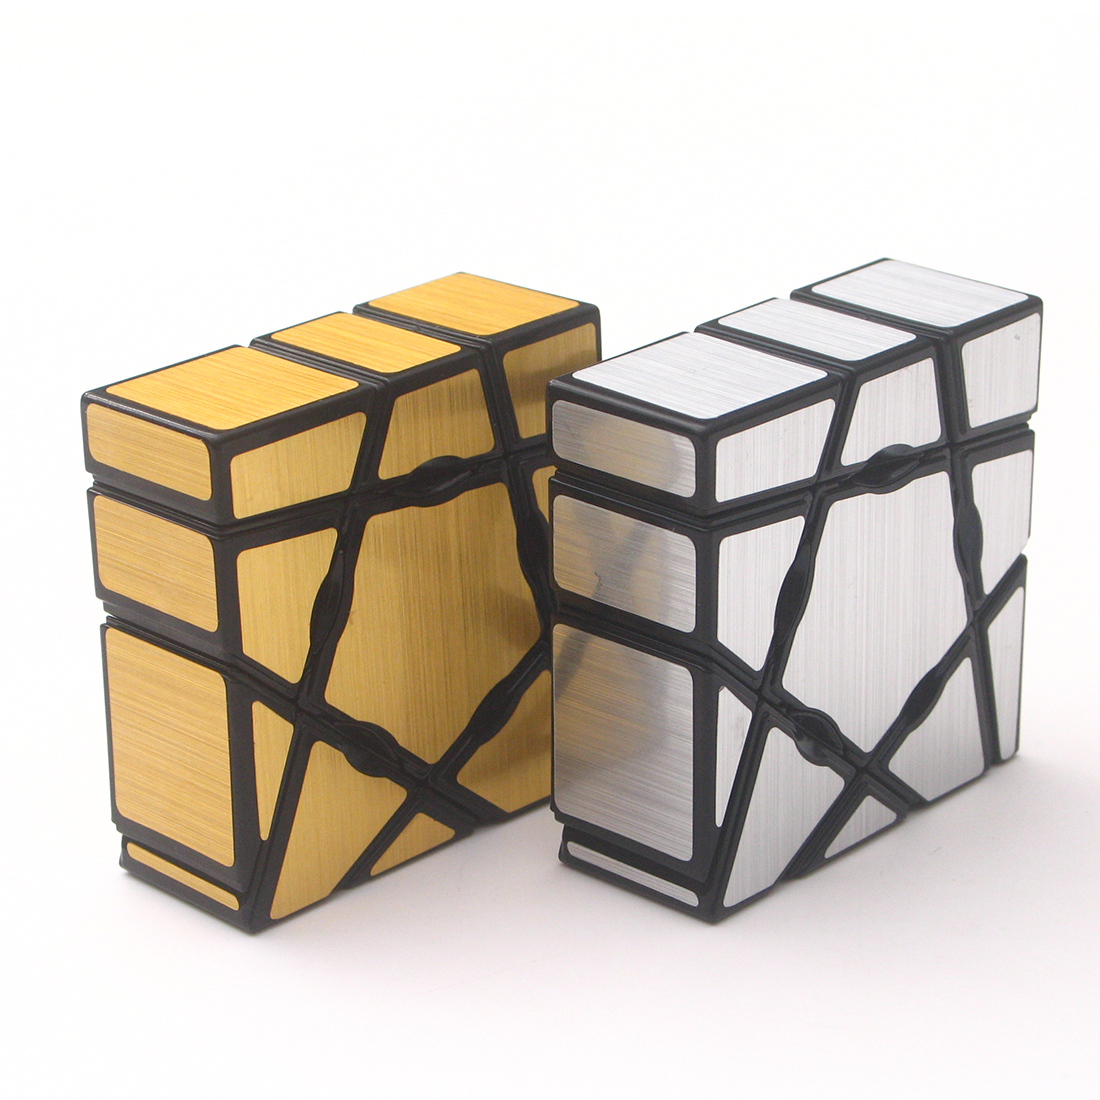 YJ Strange Shape Mirror 1x3x3 Magic Cube Puzzle Toy Magic Cast Coated Cube Toys For Children Kids Educational Gift Toy